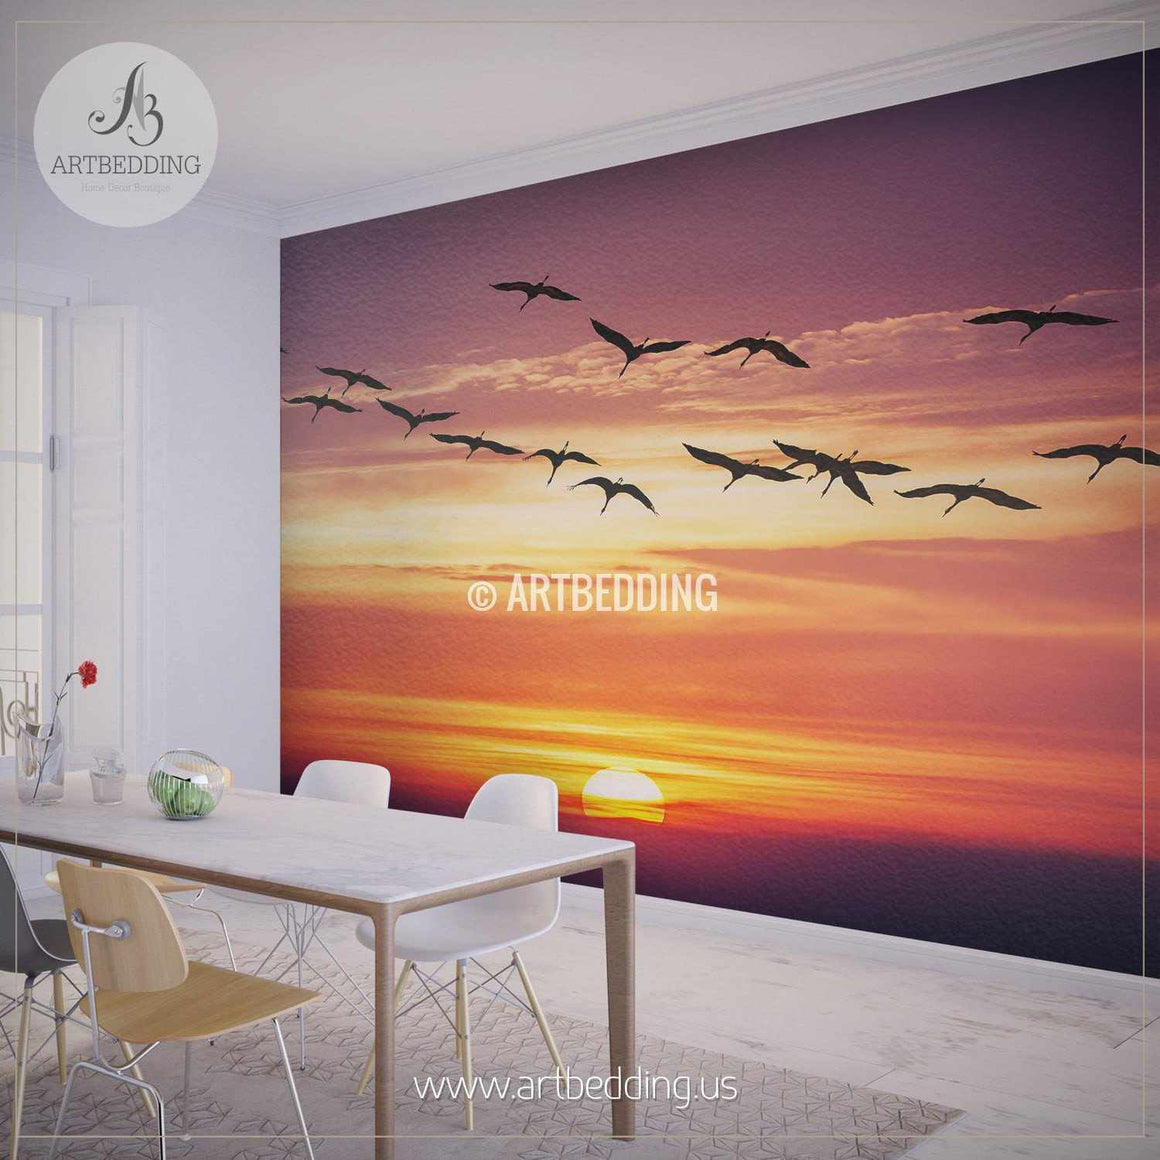 Storks flying towards Sunset Wall Mural, Self Adhesive Peel & Stick Photo Mural, Nature photo mural home decor wall mural